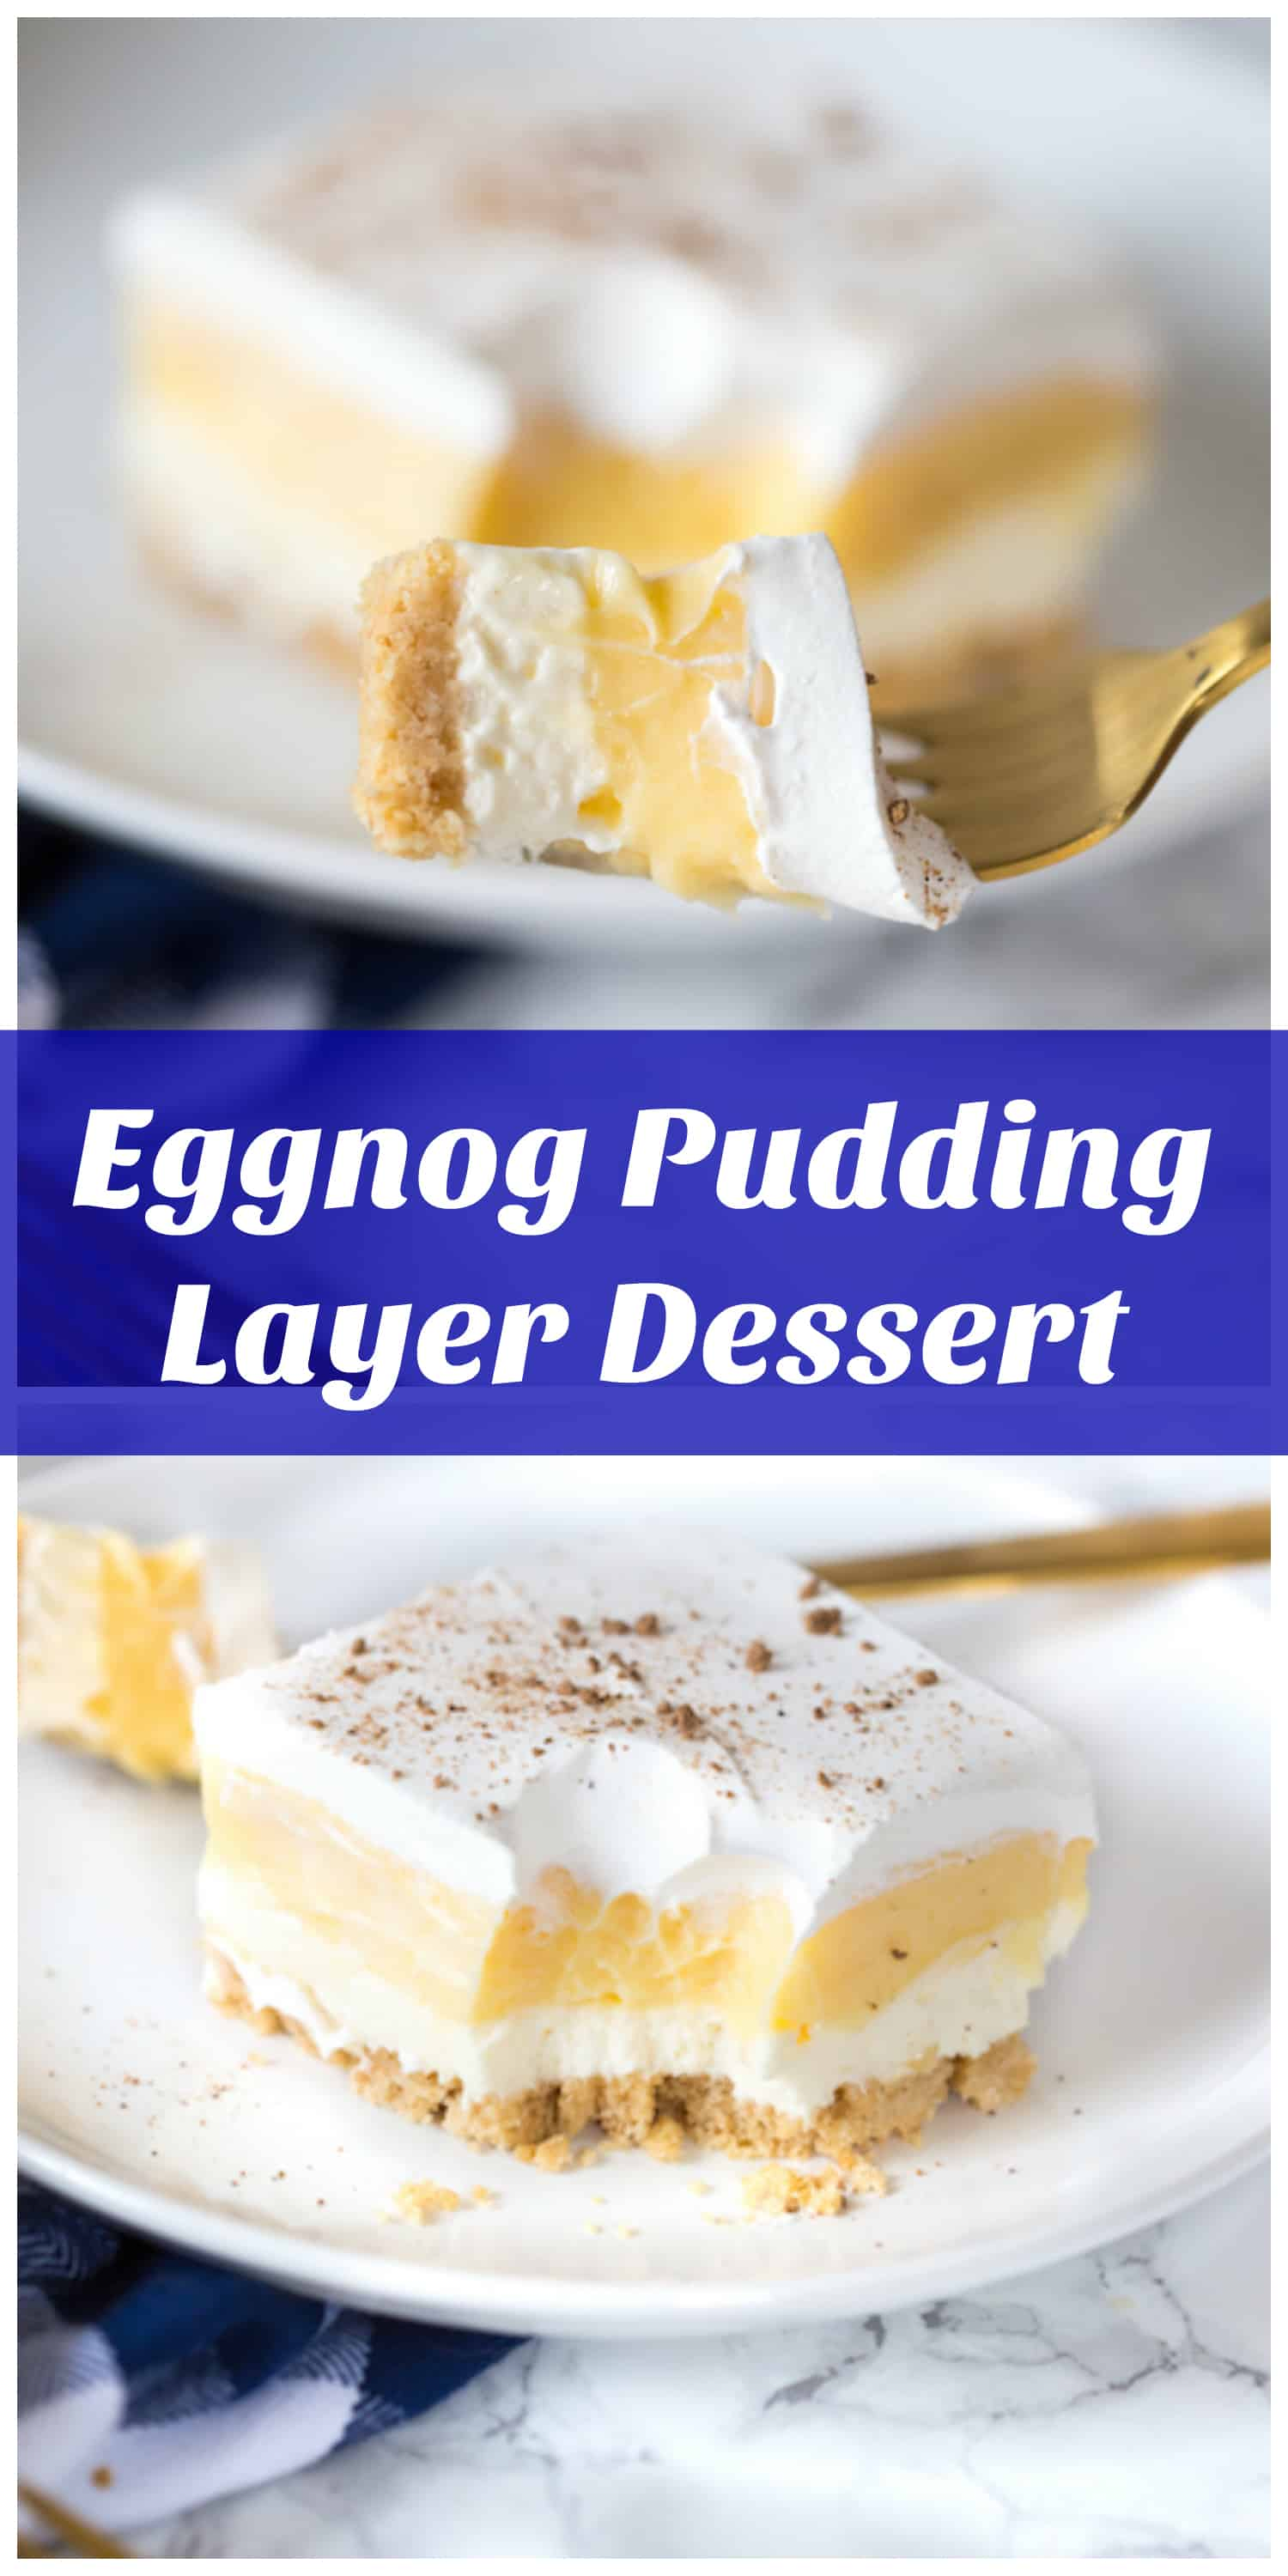 Eggnog Pudding Layer Dessert collage with text overlay